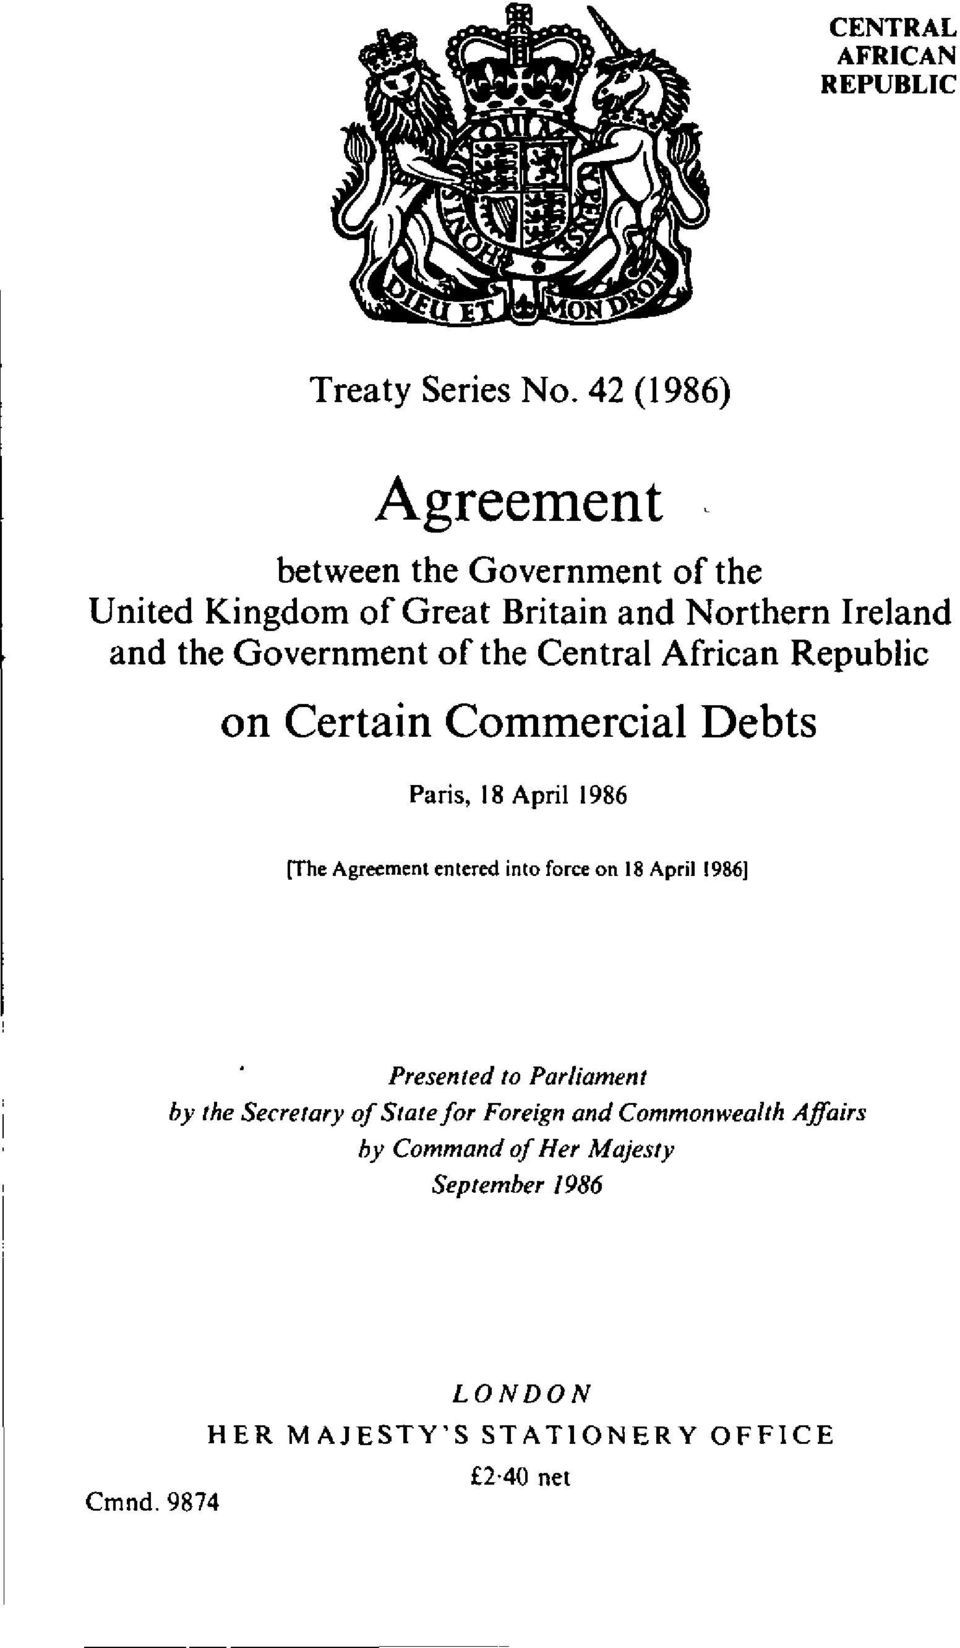 Government of the Central African Republic on Certain Commercial Debts Paris, 18 April 1986 (The Agreement entered into